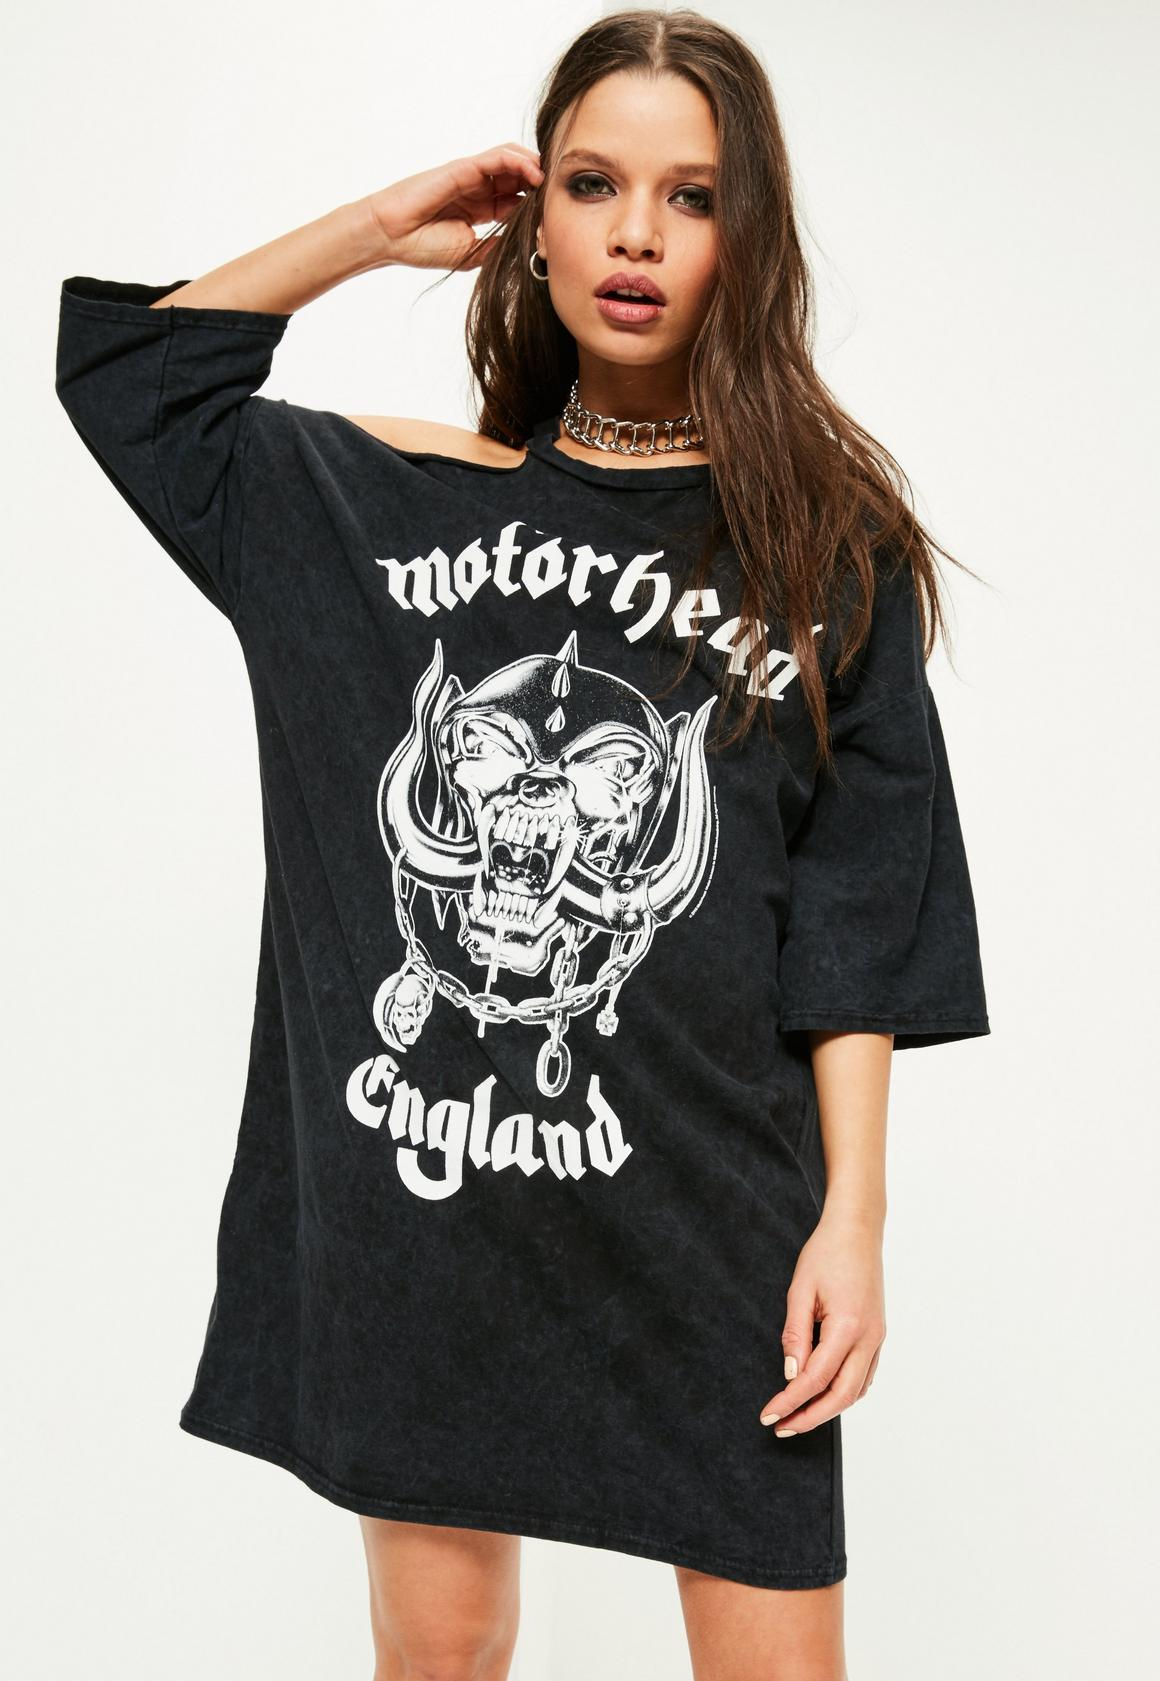 Black shirt dress - Black Motorhead Wash T Shirt Dress